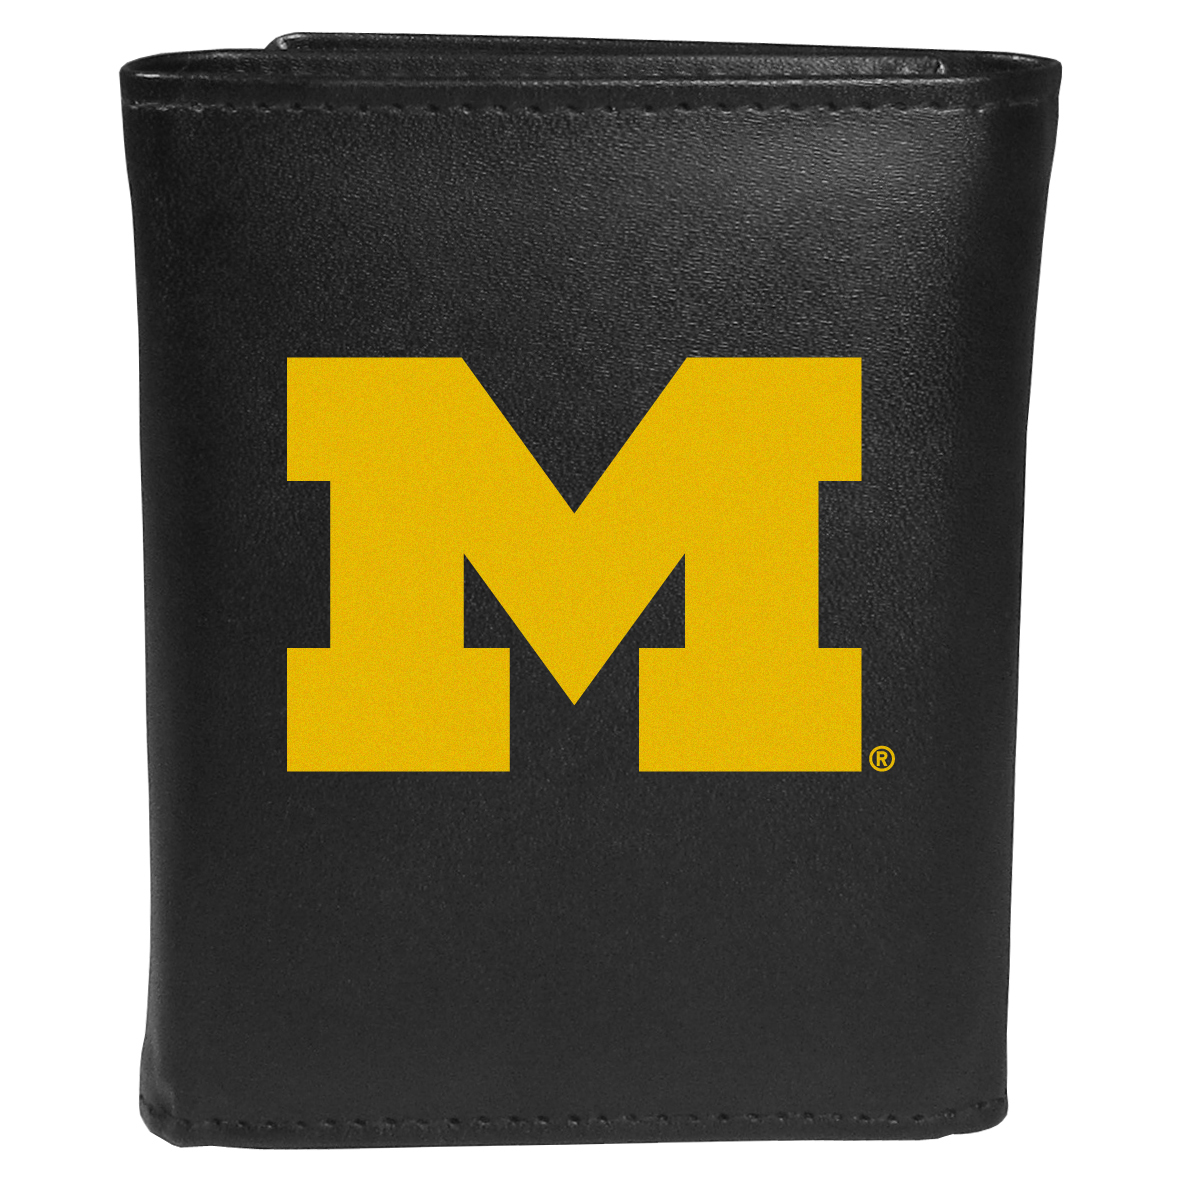 Michigan Wolverines Tri-fold Wallet Large Logo - Sports fans do not have to sacrifice style with this classic tri-fold wallet that sports theMichigan Wolverines?extra large logo. This men's fashion accessory has a leather grain look and expert craftmanship for a quality wallet at a great price. The wallet features inner credit card slots, windowed ID slot and a large billfold pocket. The front of the wallet features an extra large printed team logo.